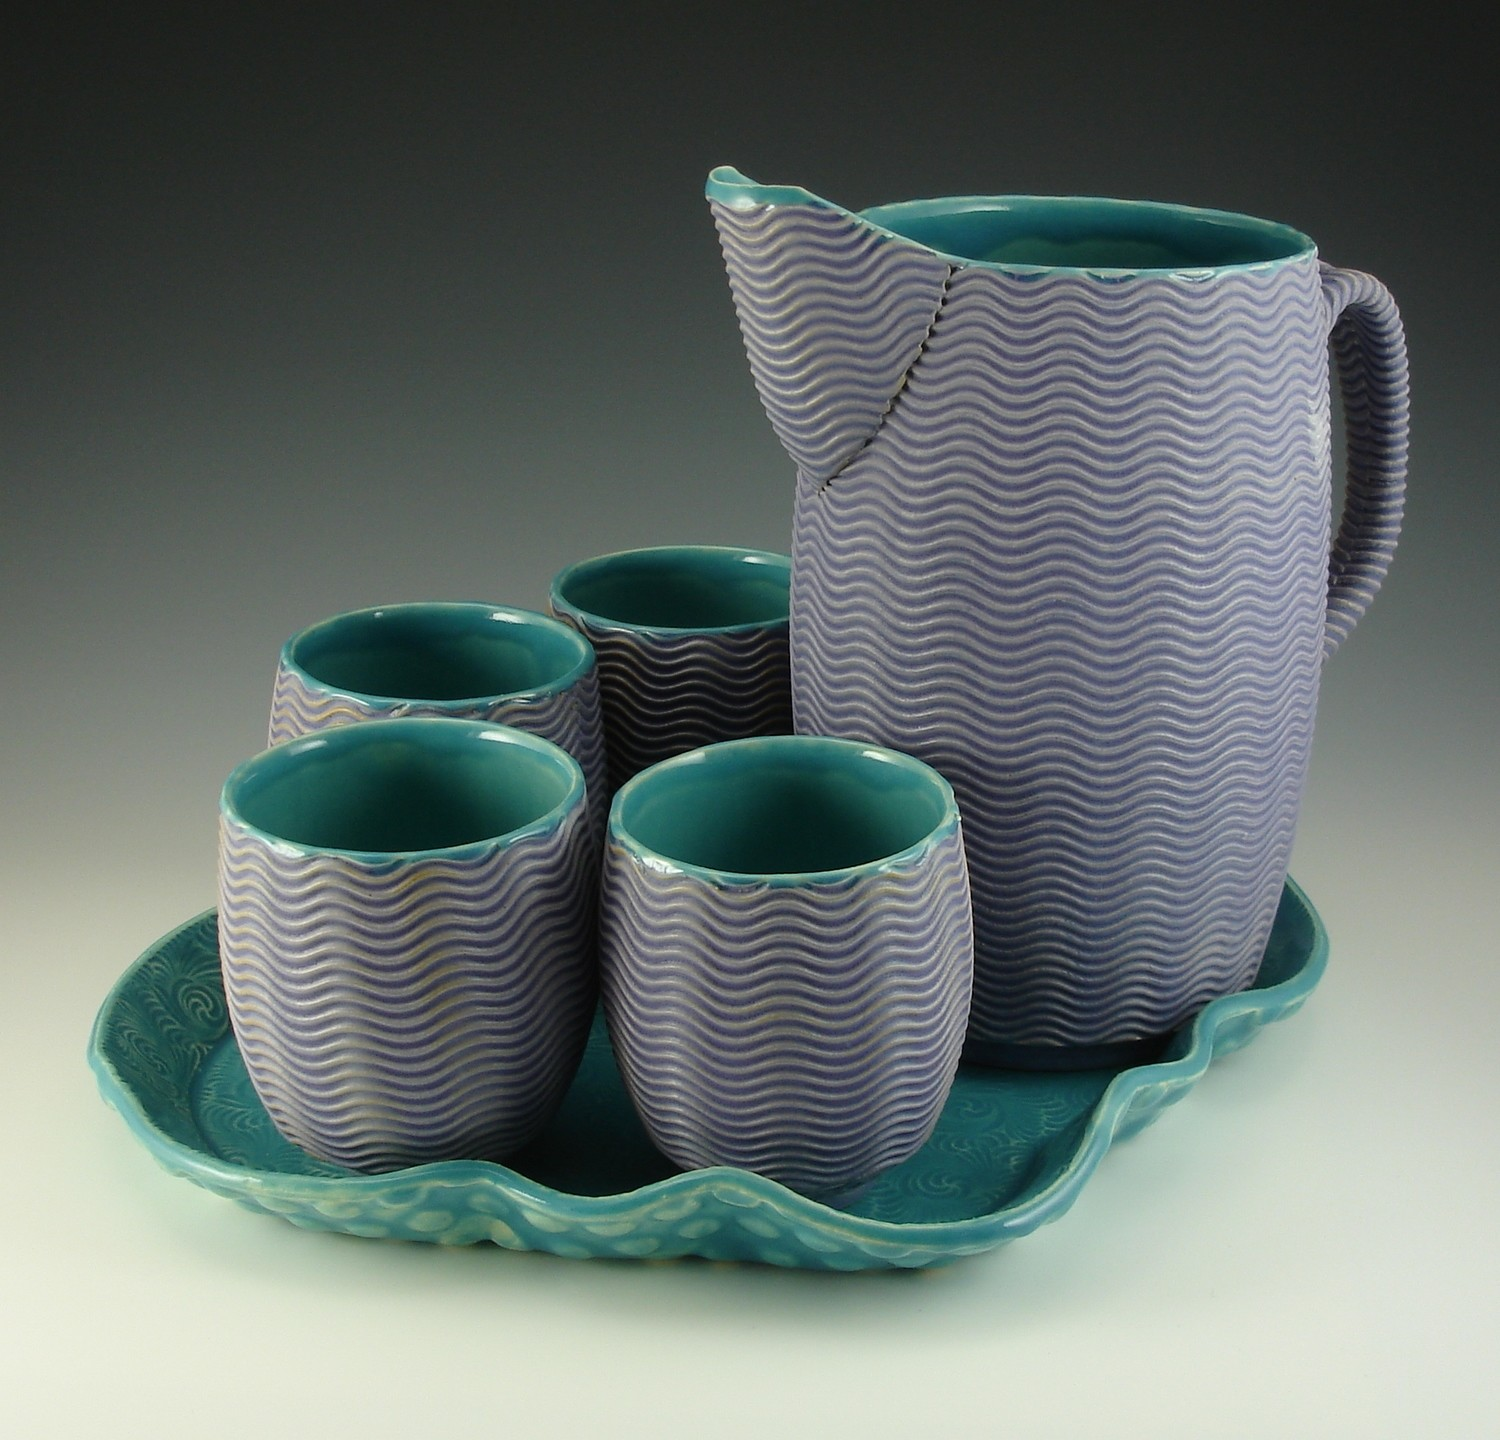 Pitcher Set in turquoise & purple